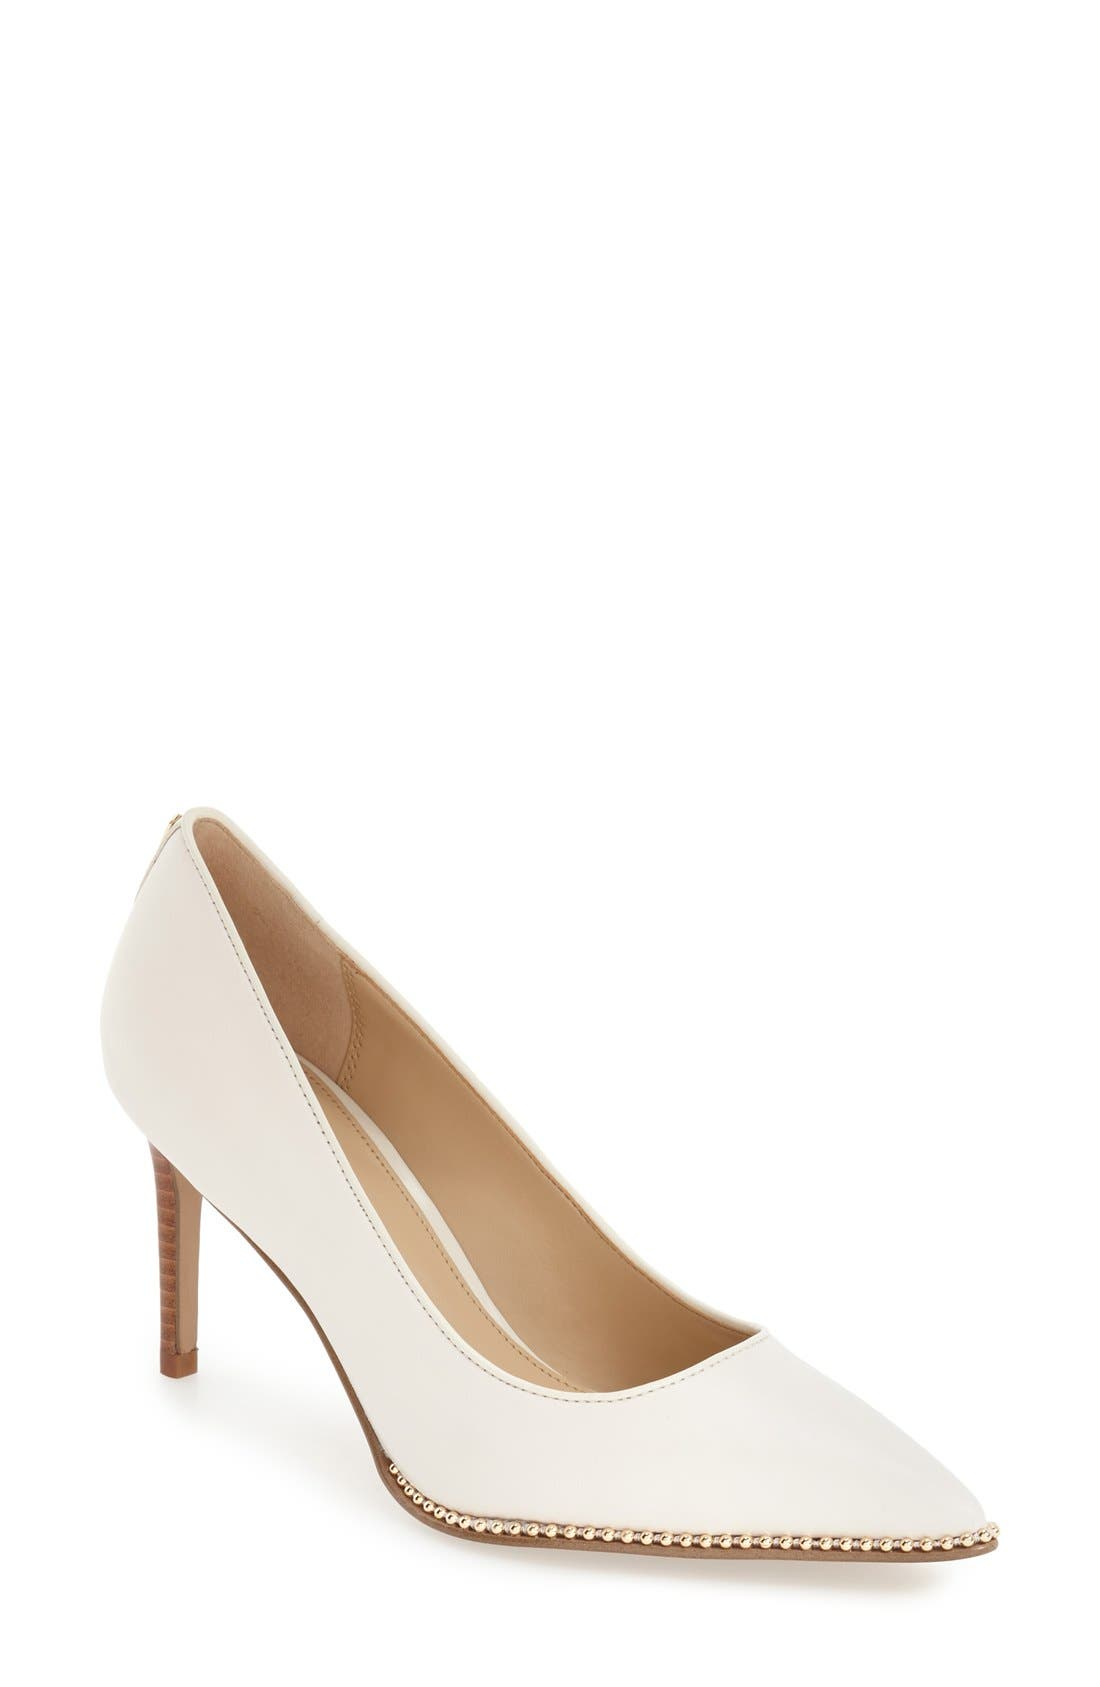 COACH 'Vonna' Pointy Toe Pump (Women)